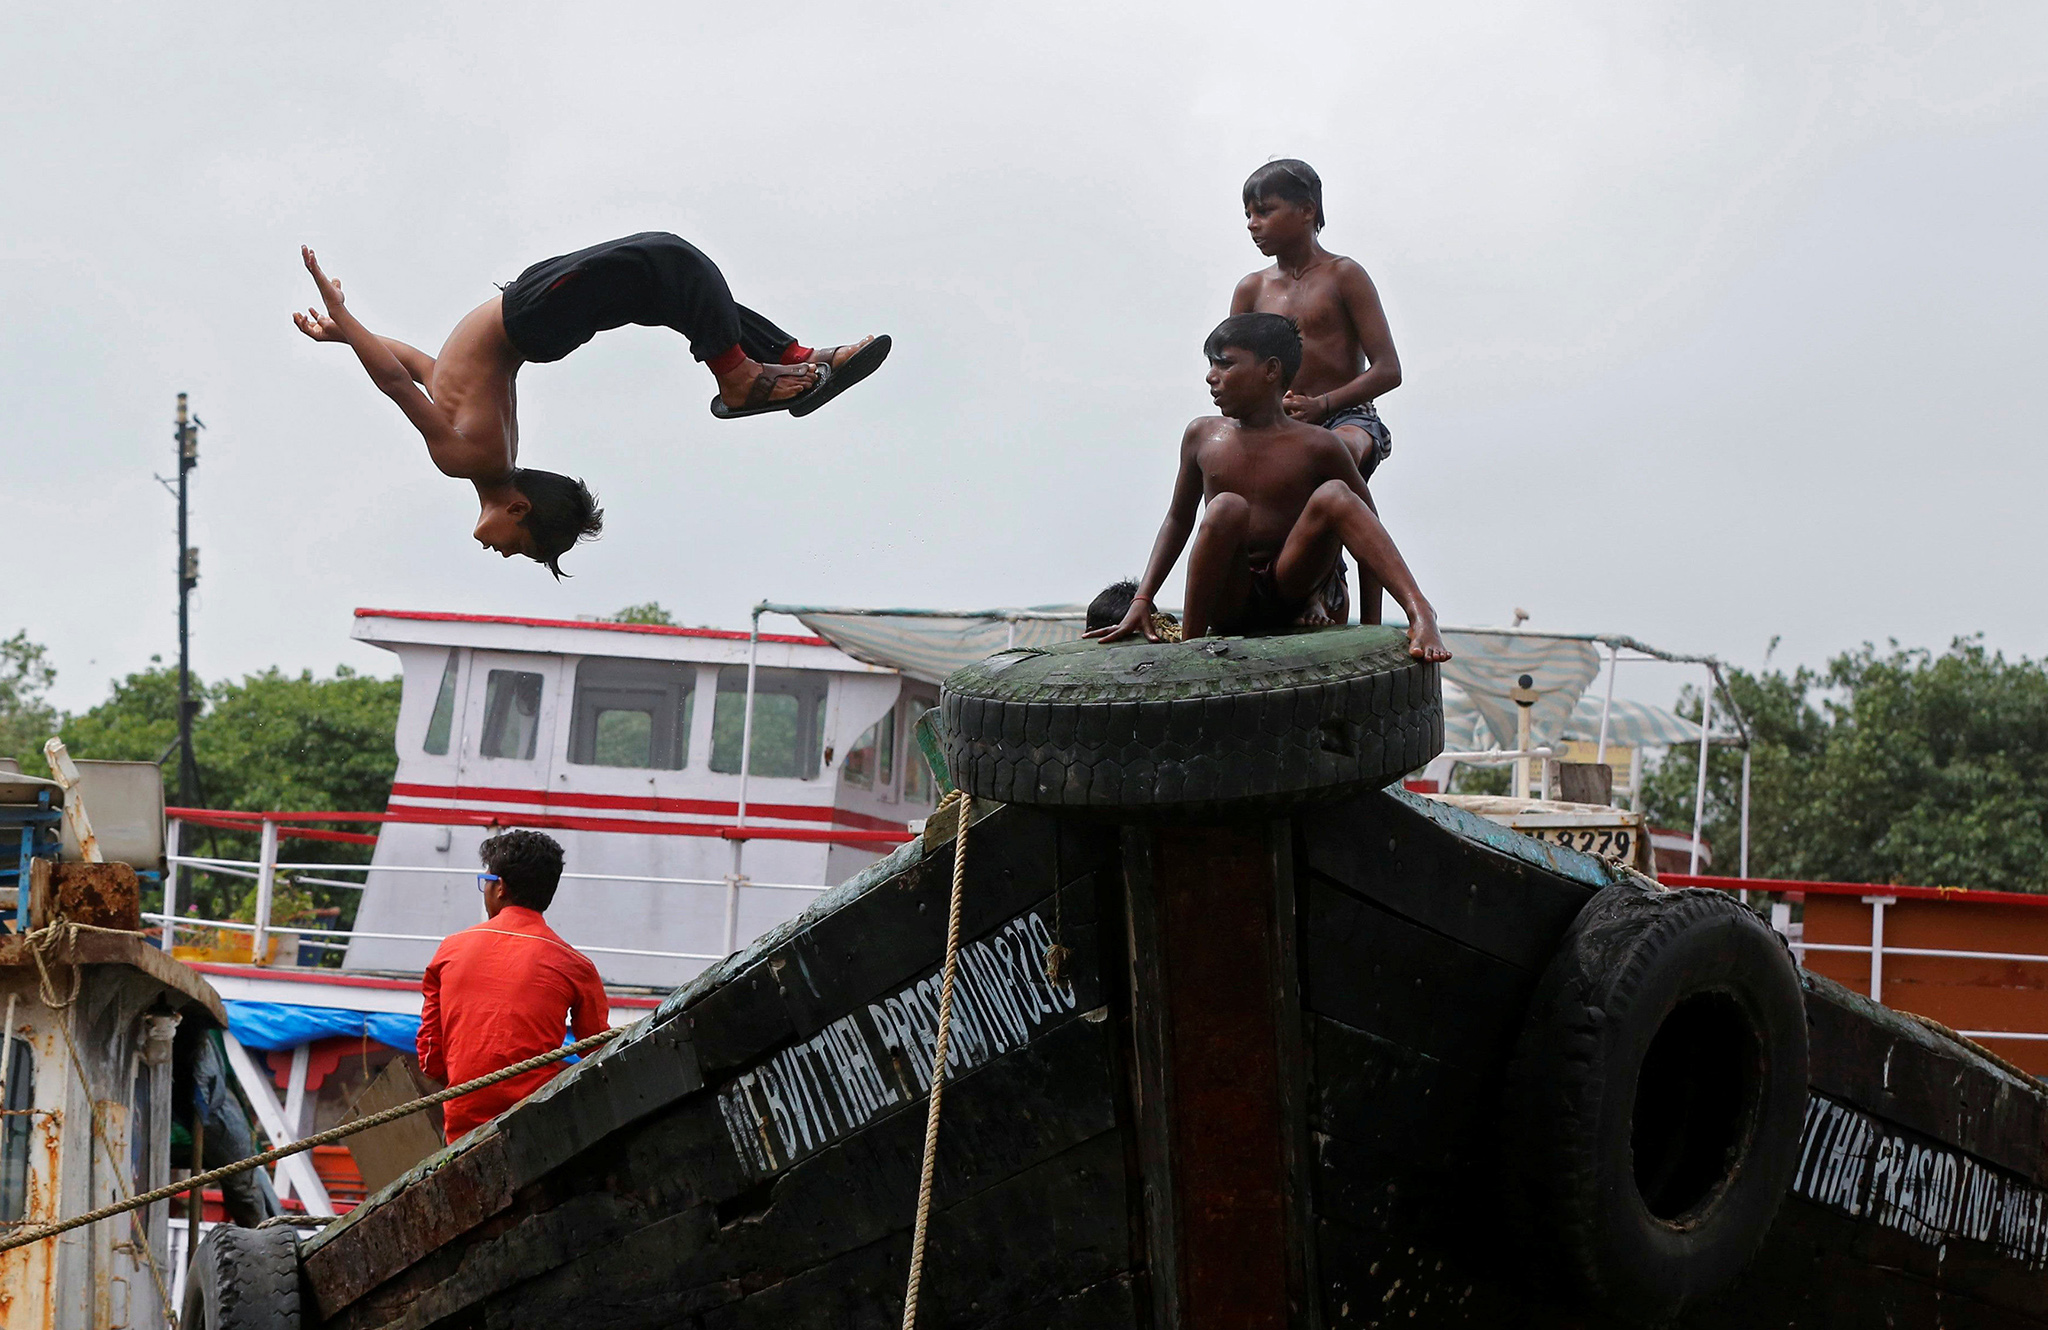 A boy dives off from a boat under maintenance in a dry dock in Mumbai, India